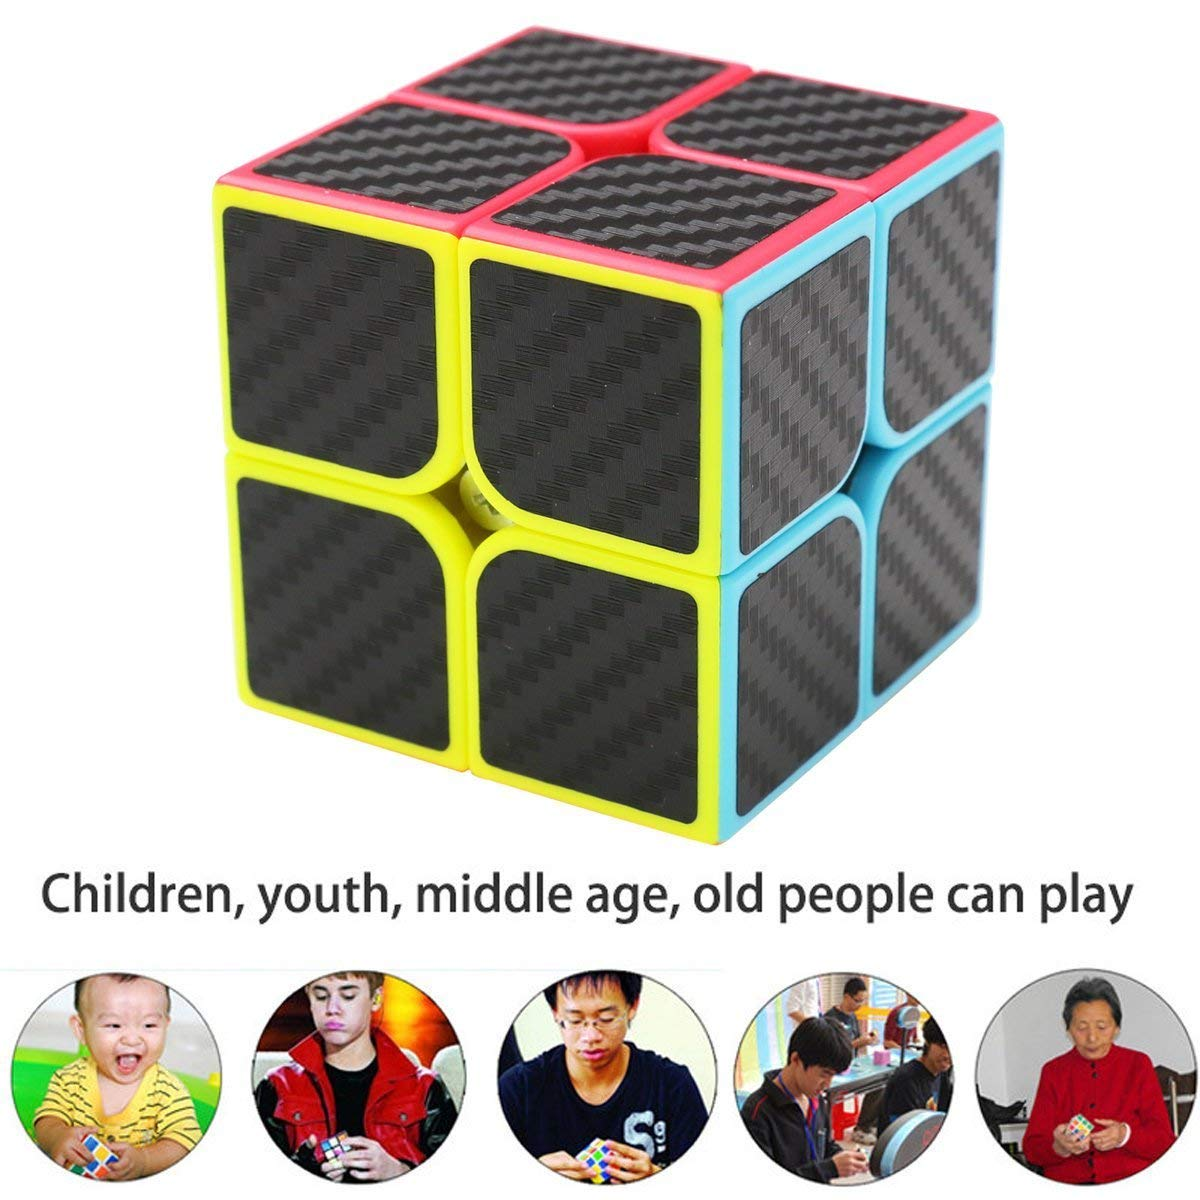 D.F.L Speed Cubes 3D Puzzles Magic Cube 3D Cube Set Rubix Cube Puzzle Cube Carbon Fiber Moyu Cube 2x2 3x3 Smooth Enhanced Version Gift for Kids and Adults by D.F.L (Image #6)